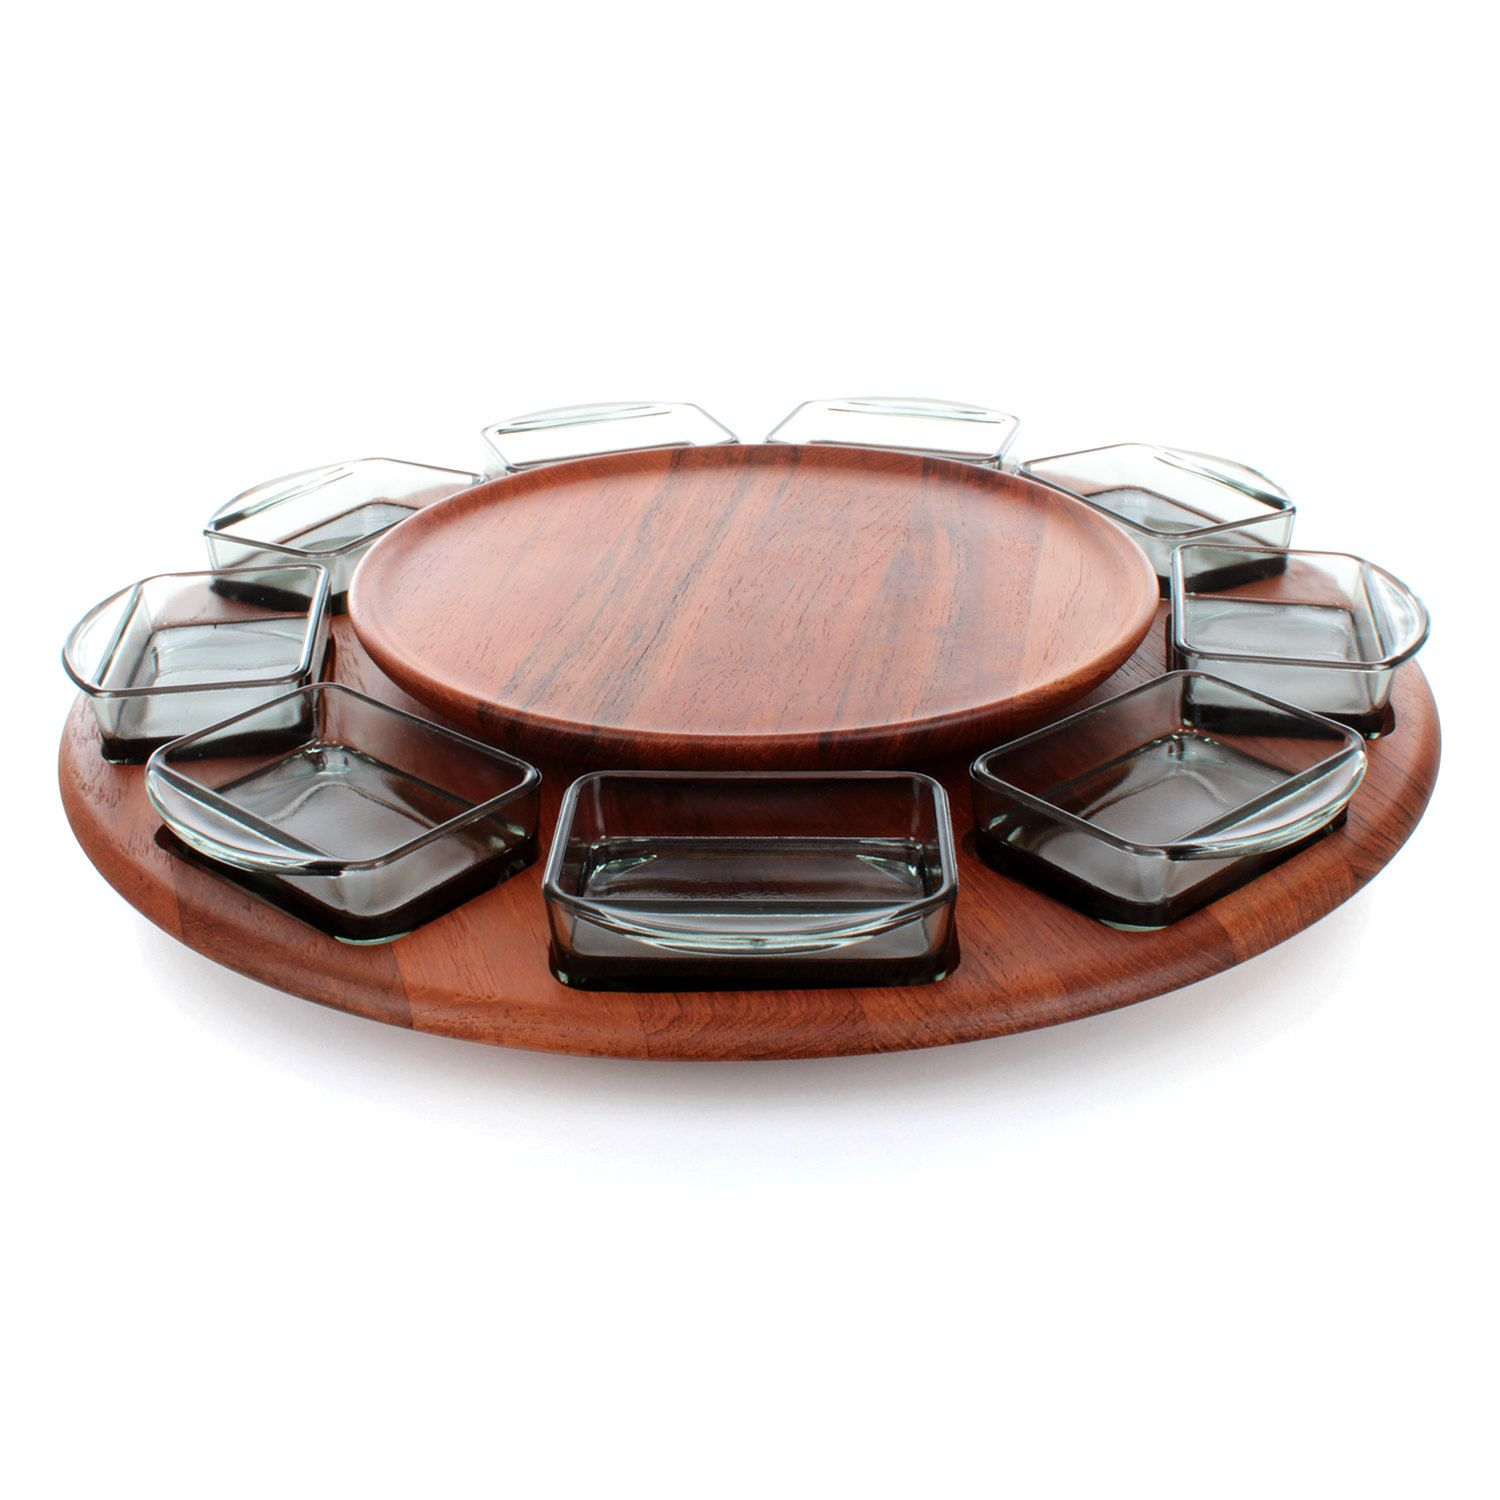 lazy susan by digsmed in the 1960s danish midcentury design large teak